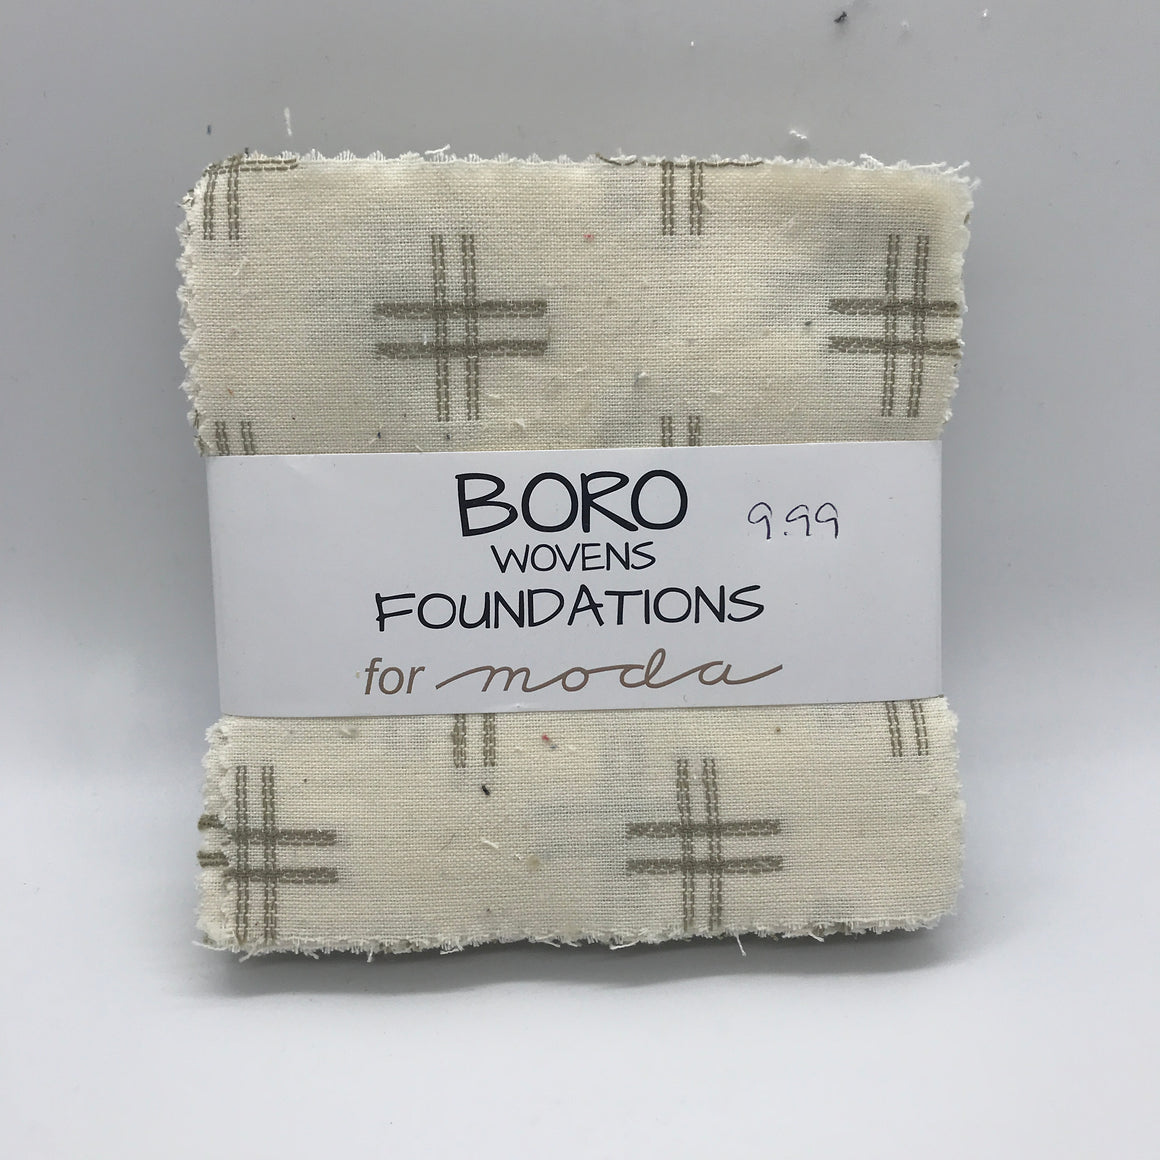 Boro Wovens Foundations